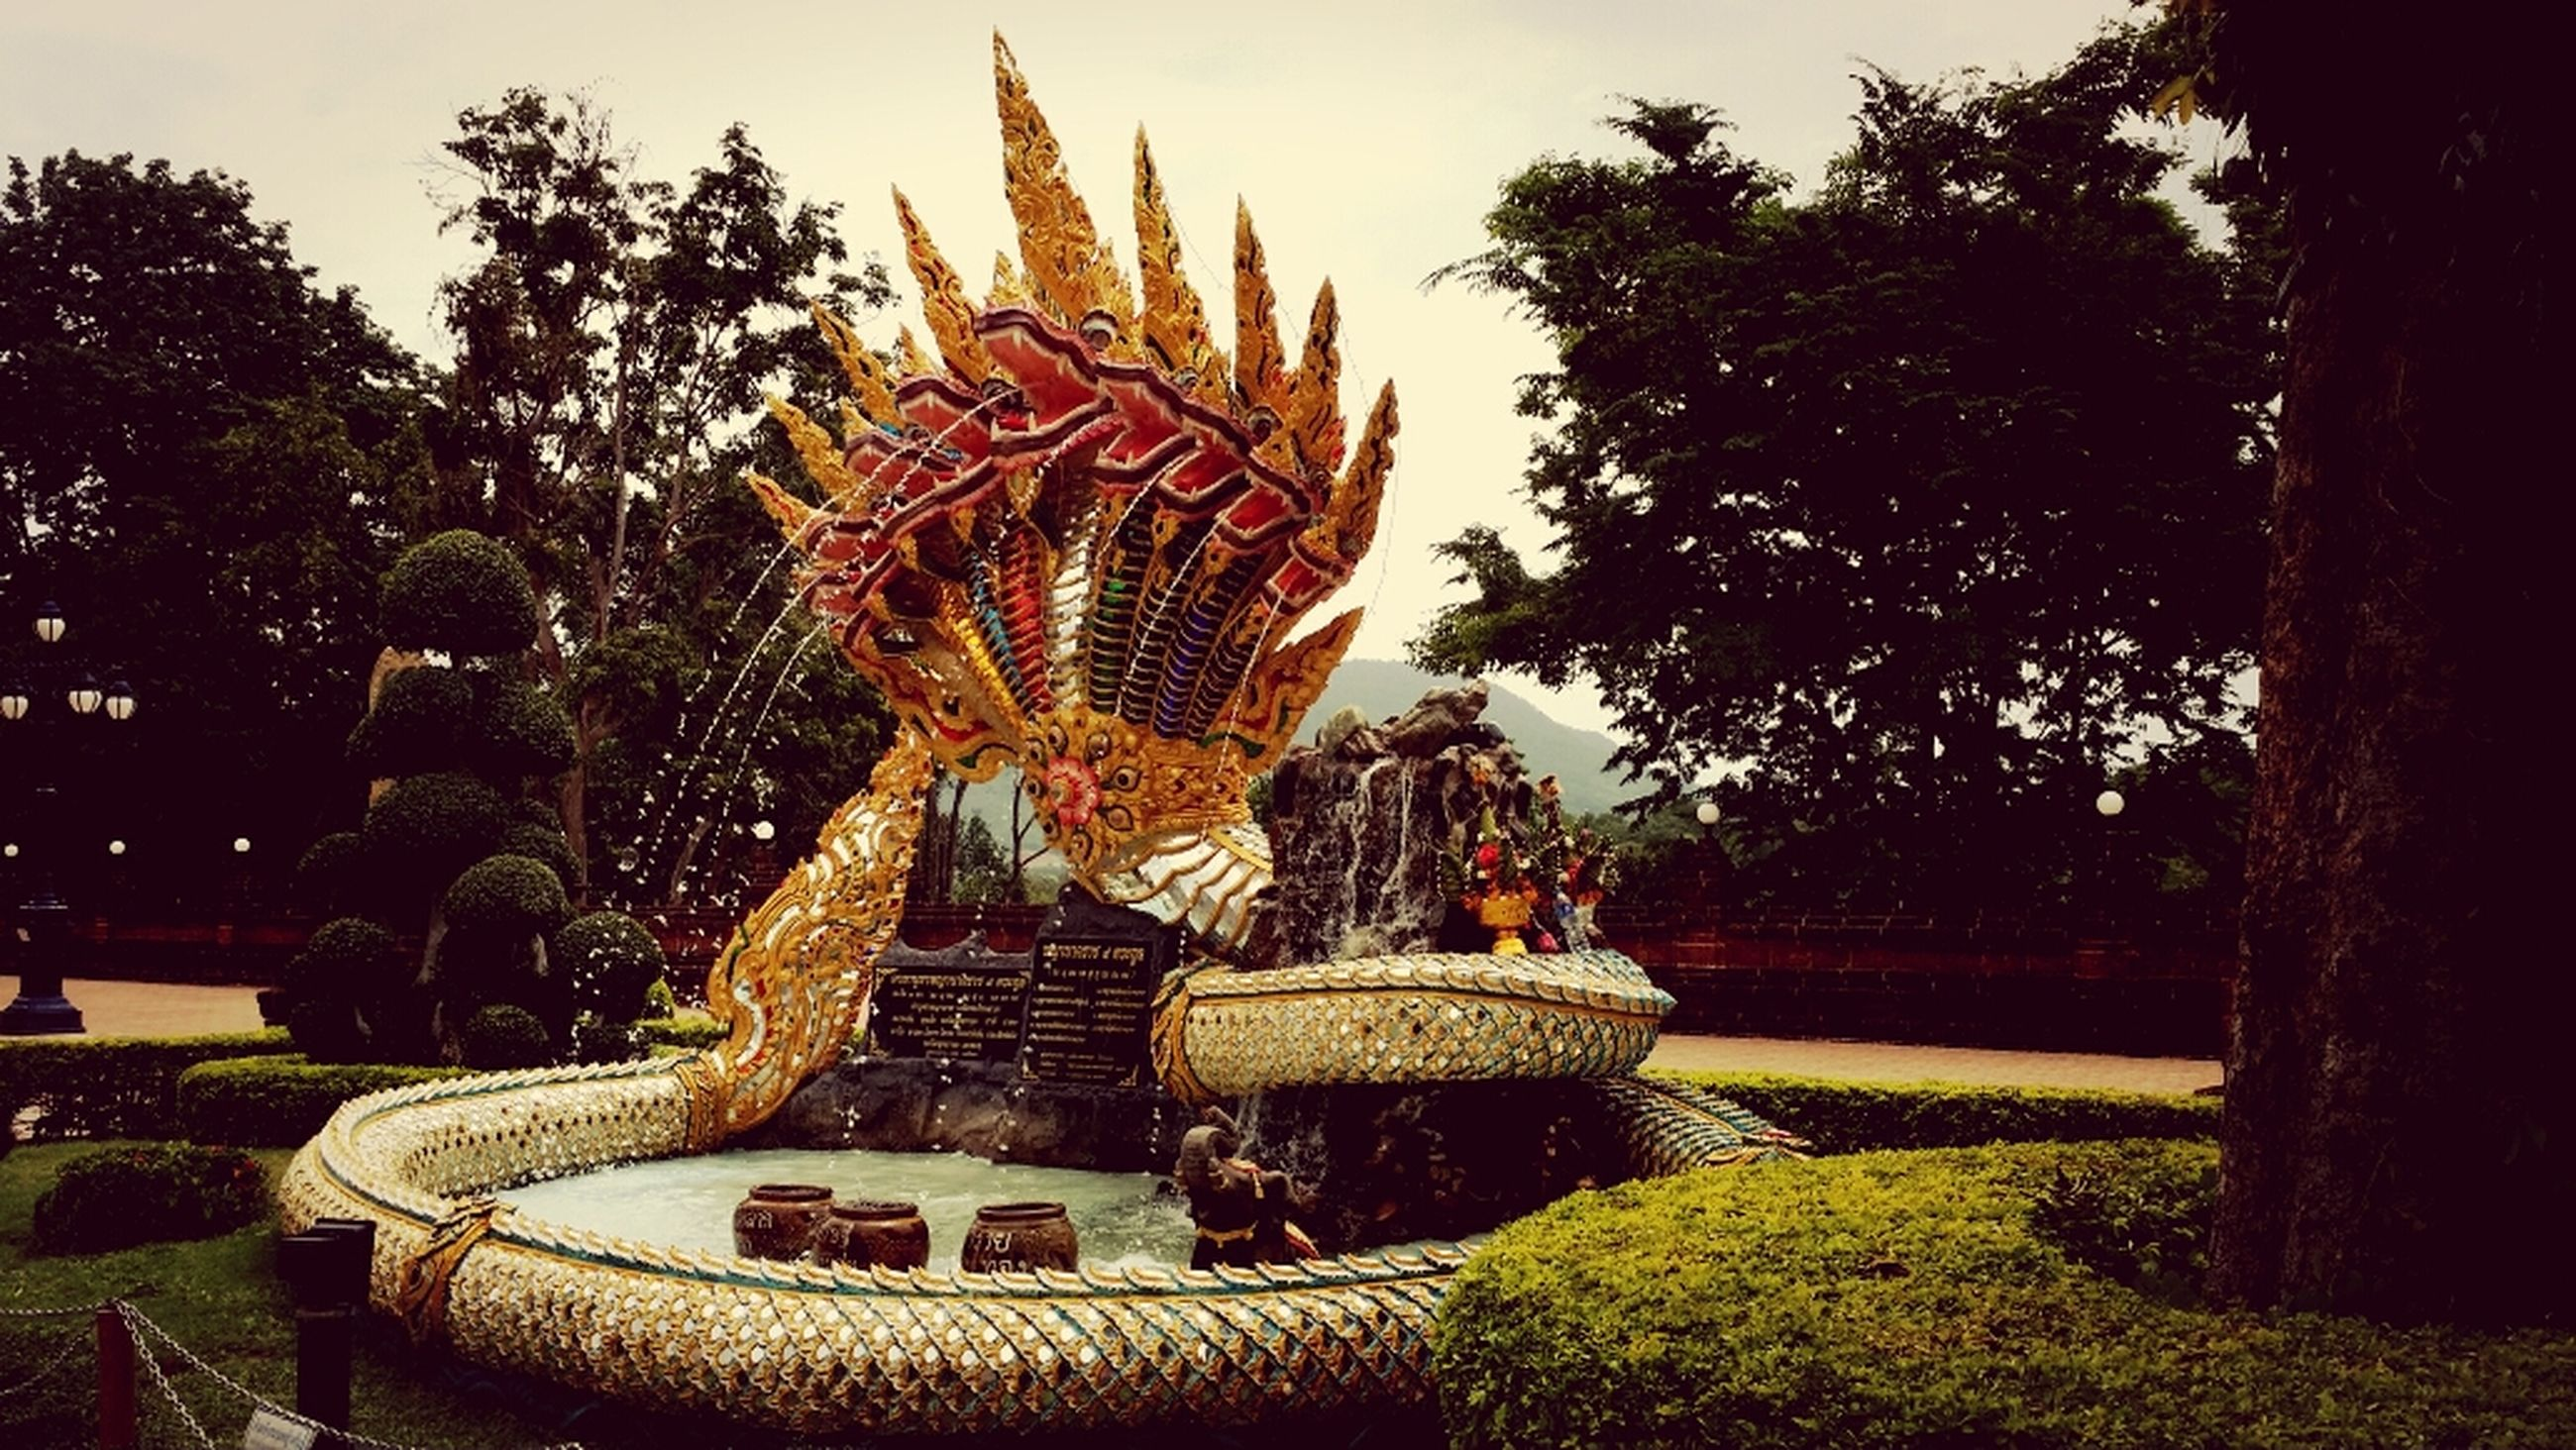 art and craft, sculpture, statue, art, human representation, creativity, tree, religion, animal representation, buddha, carving - craft product, temple - building, craft, spirituality, gold colored, park - man made space, temple